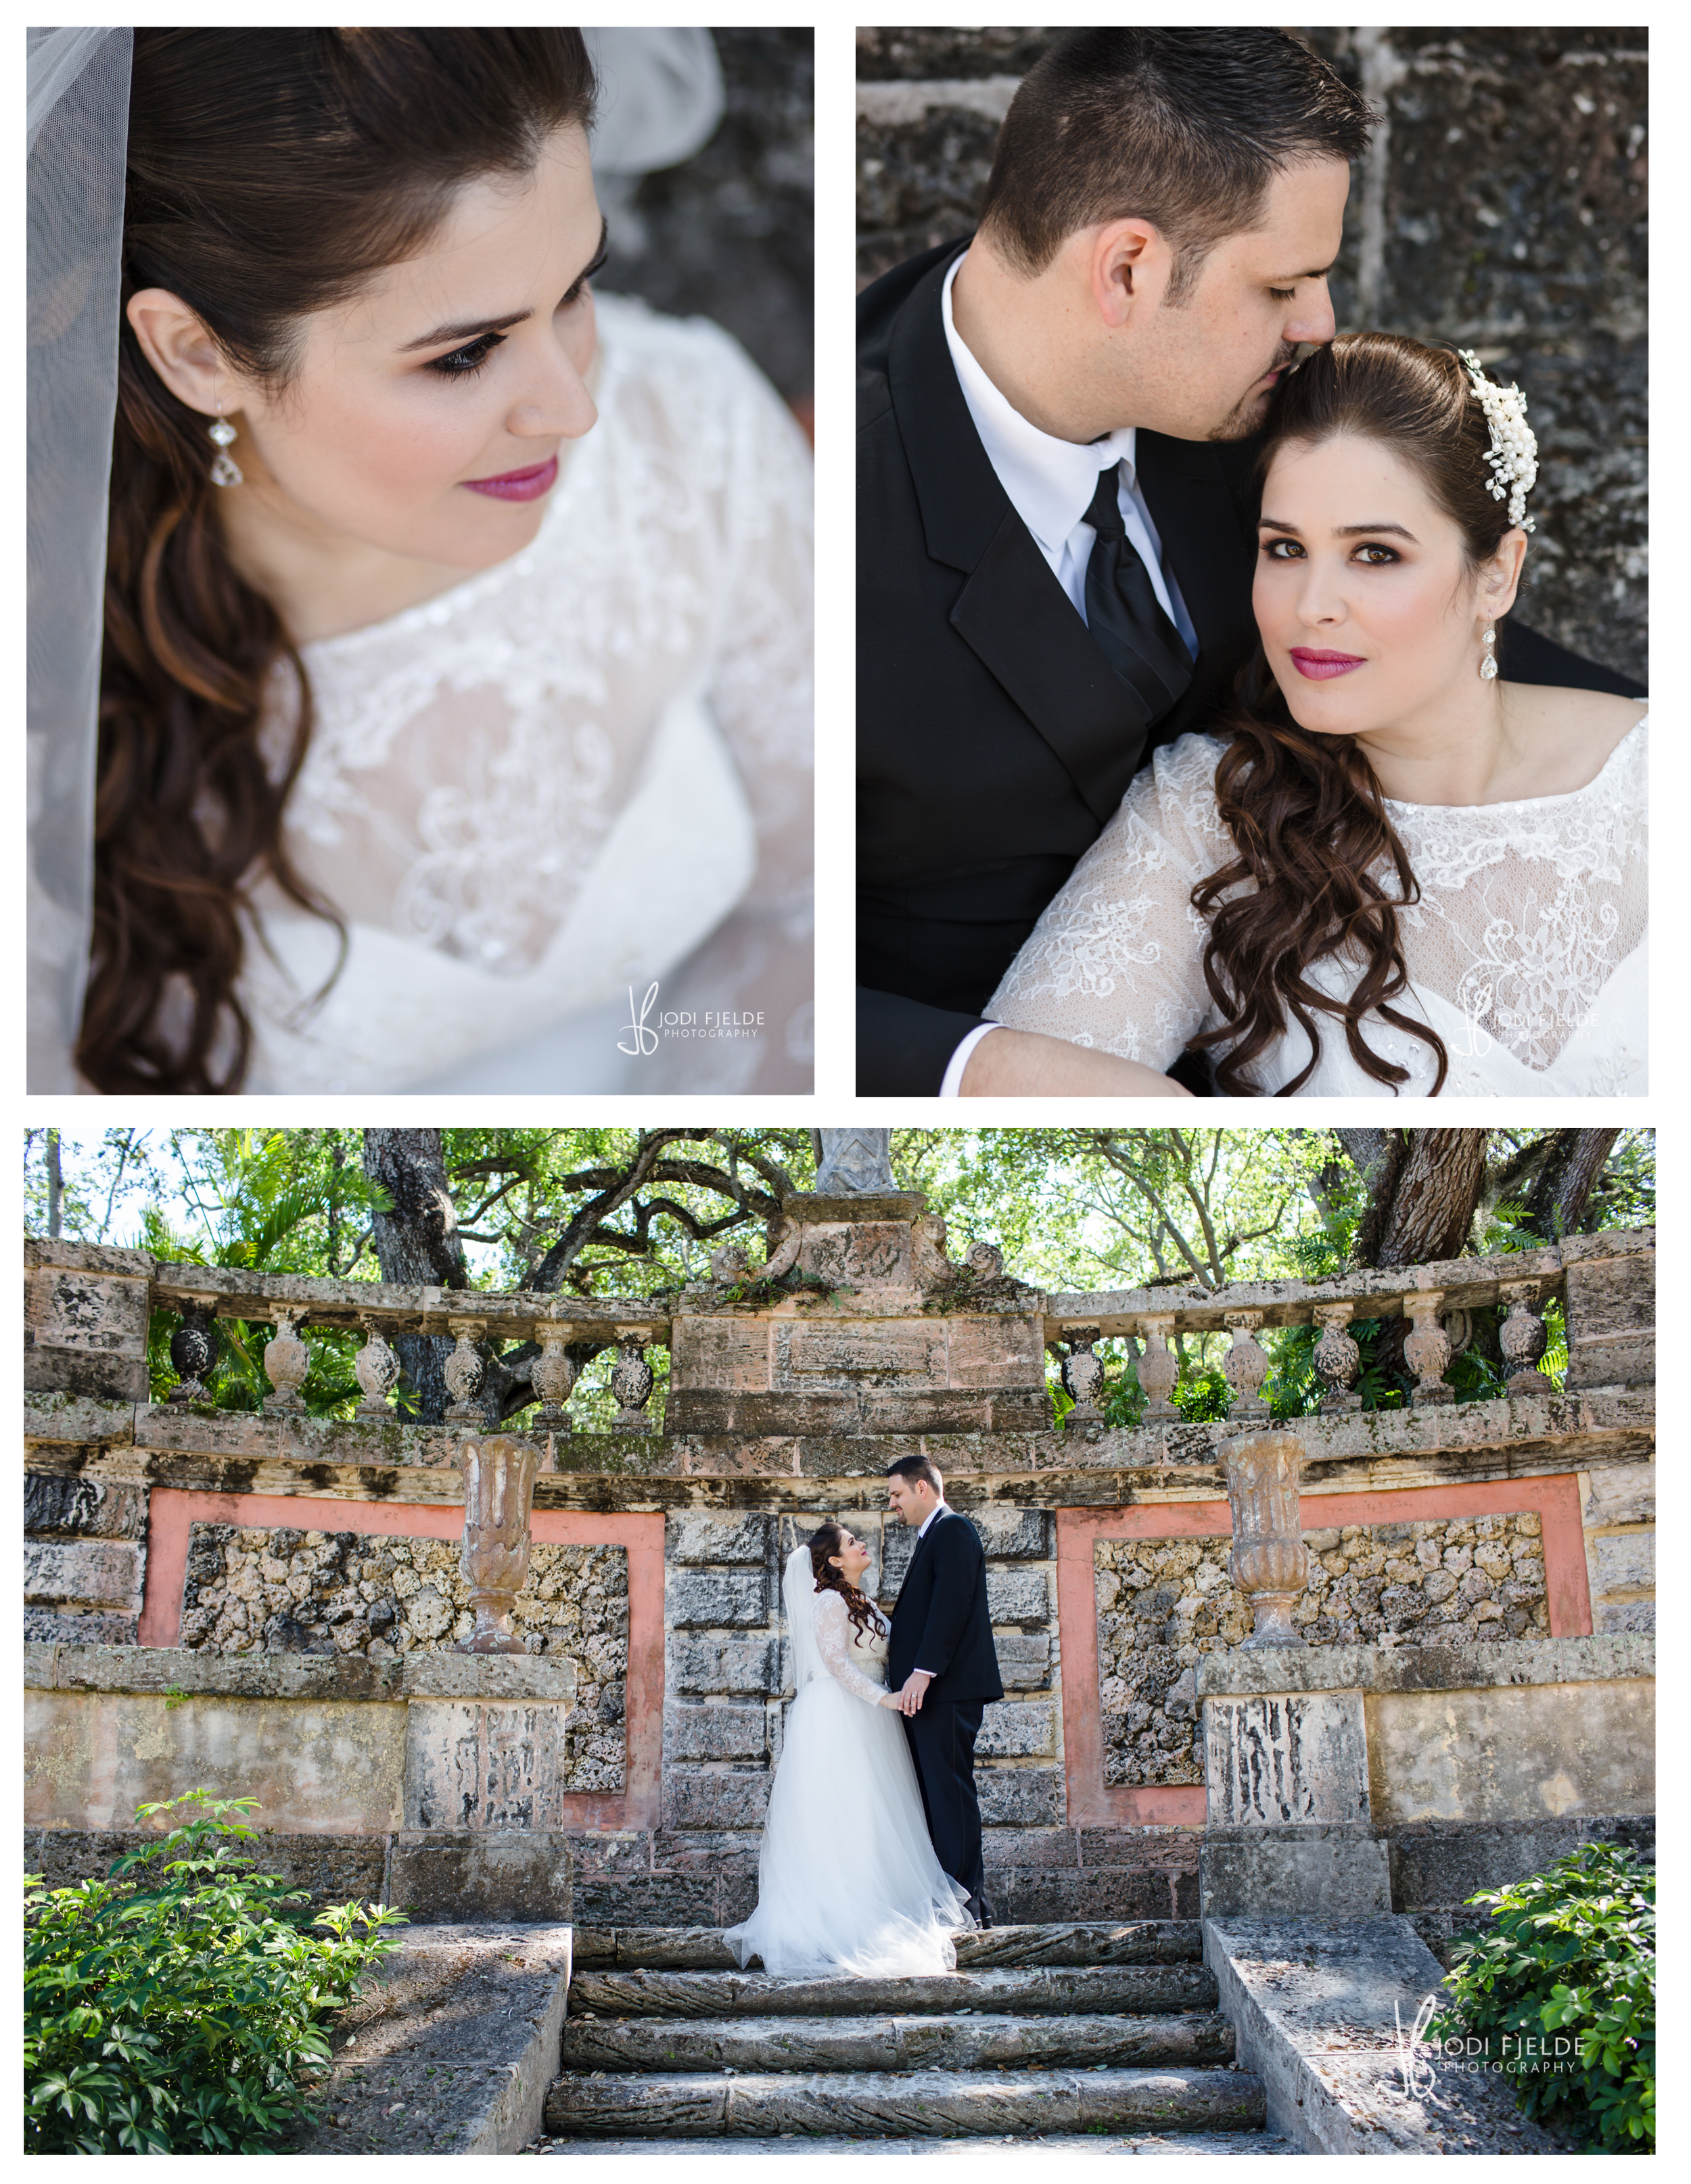 Vizcaya_Miami_Florida_Bridal_Wedding_Portraits_Jodi_Fjelde_Photography-4.jpg